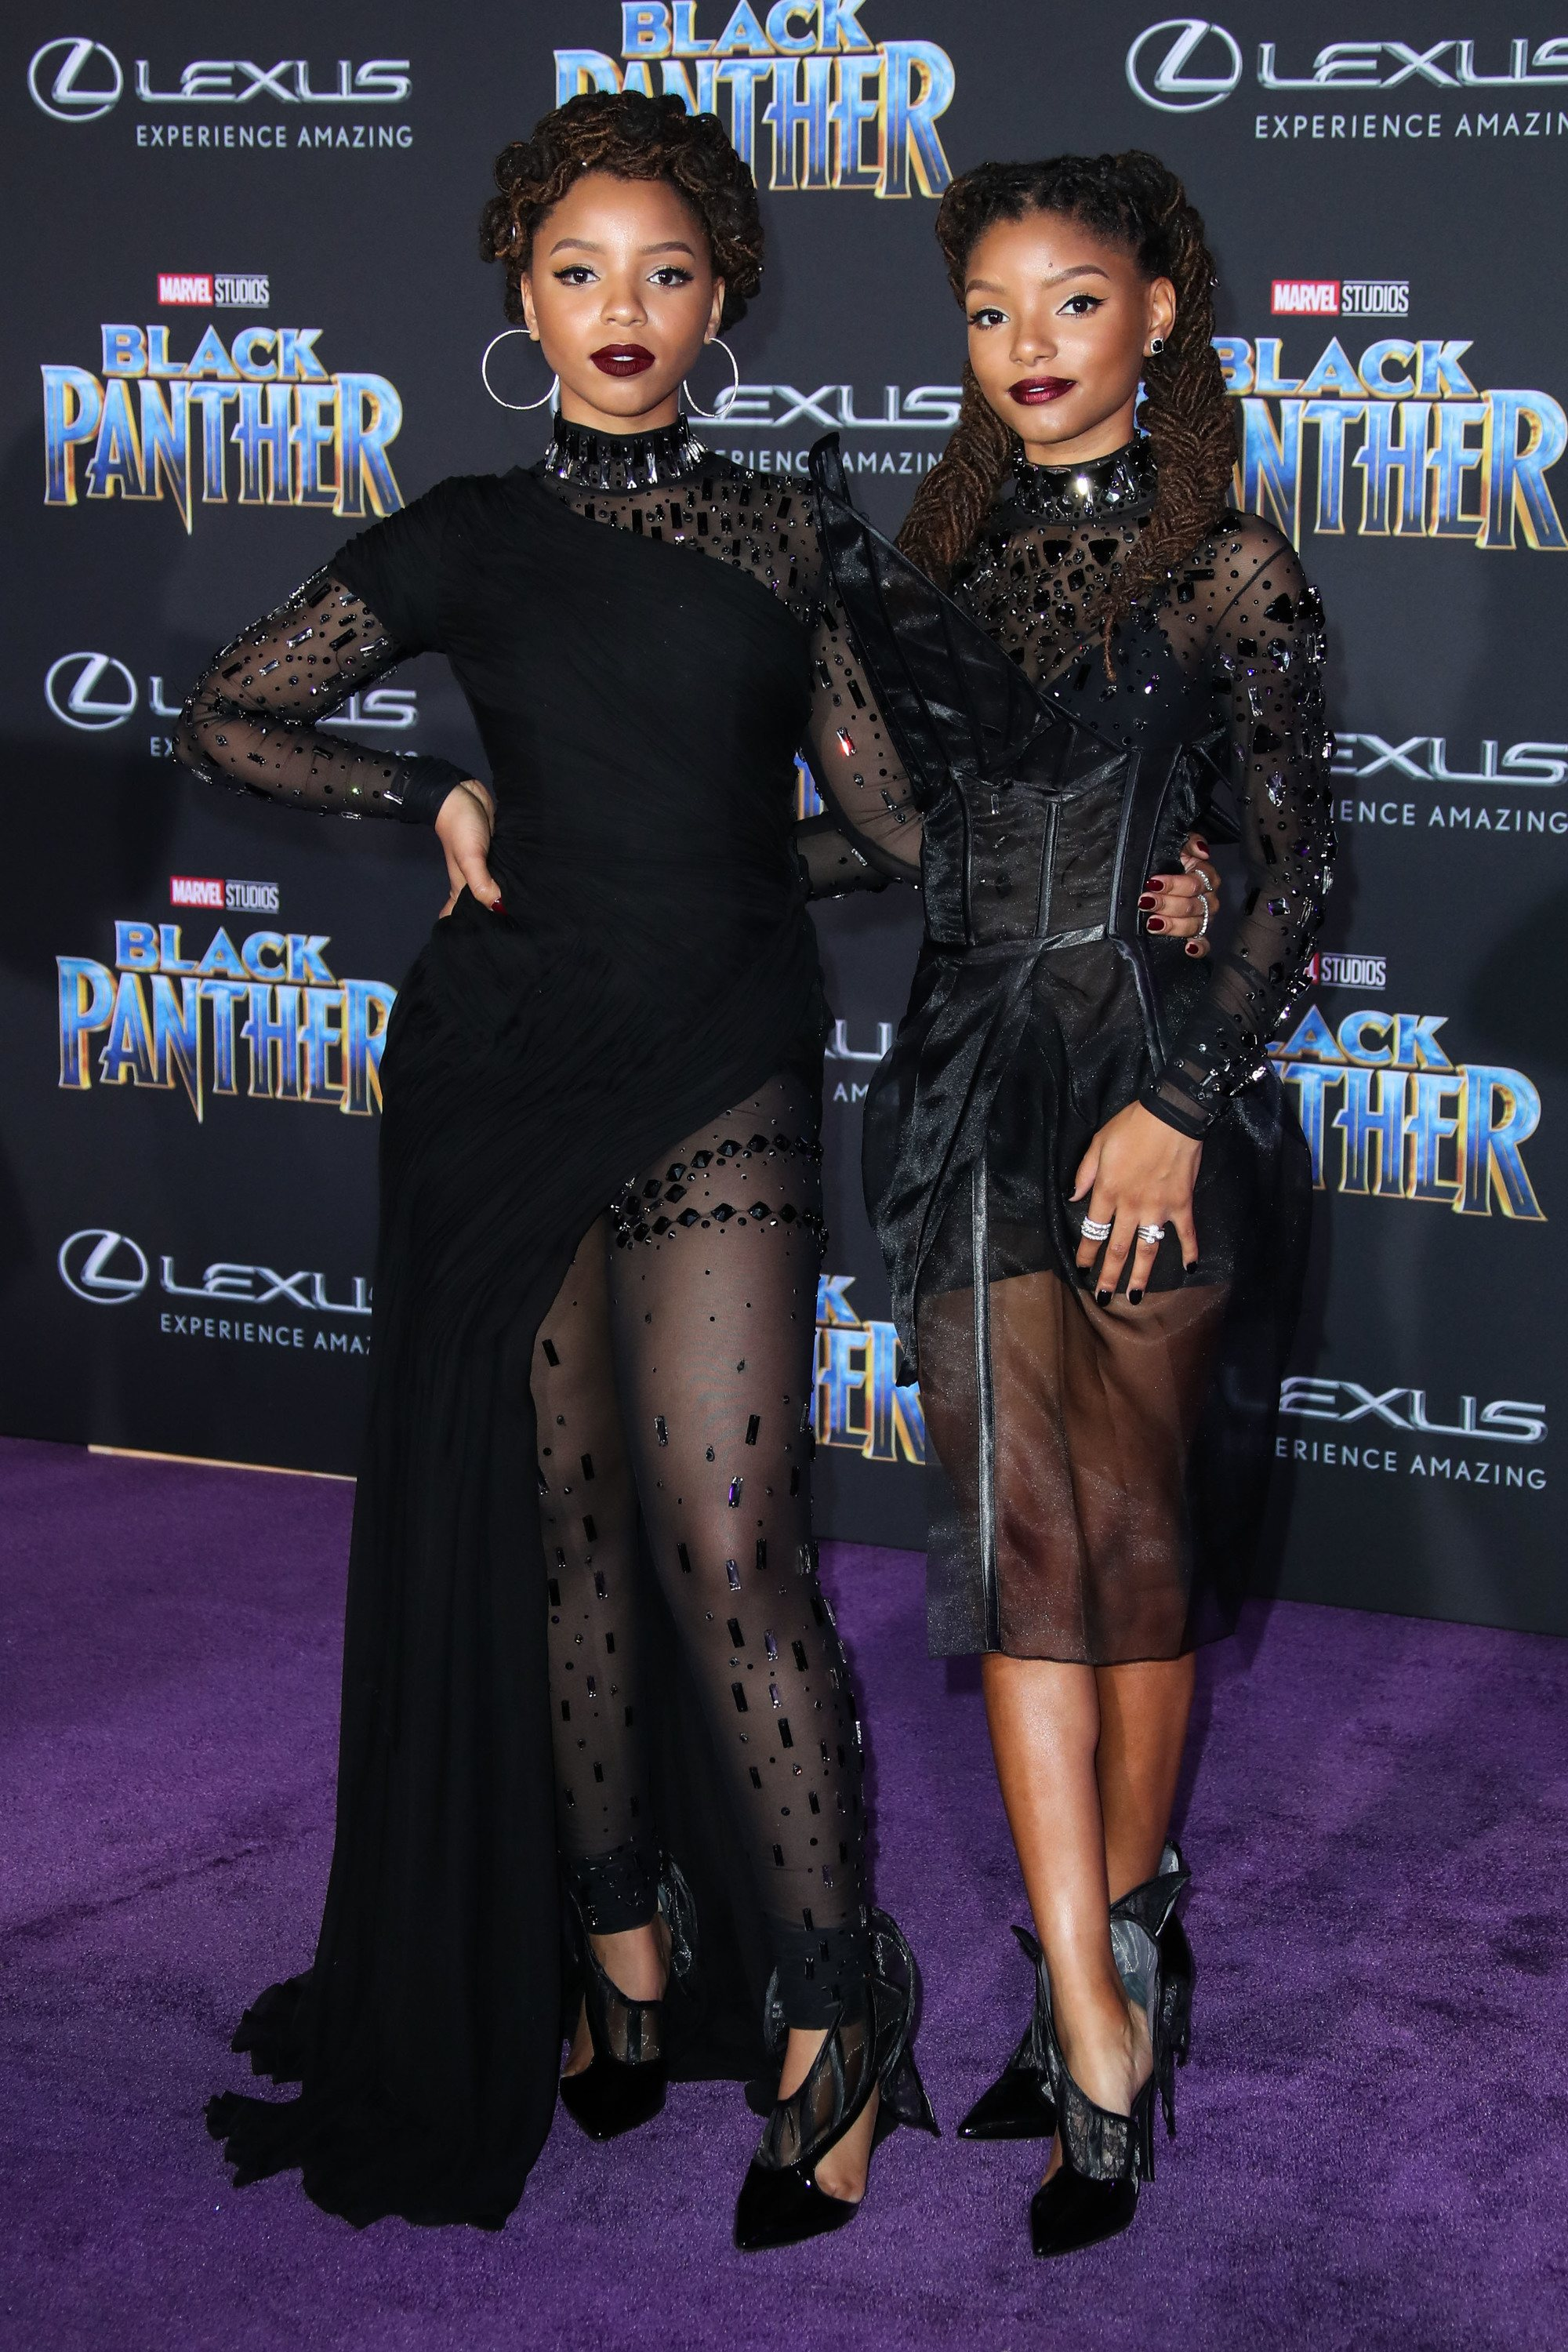 chloe-bailey-halle-bailey black panther premiere twist hairstyles